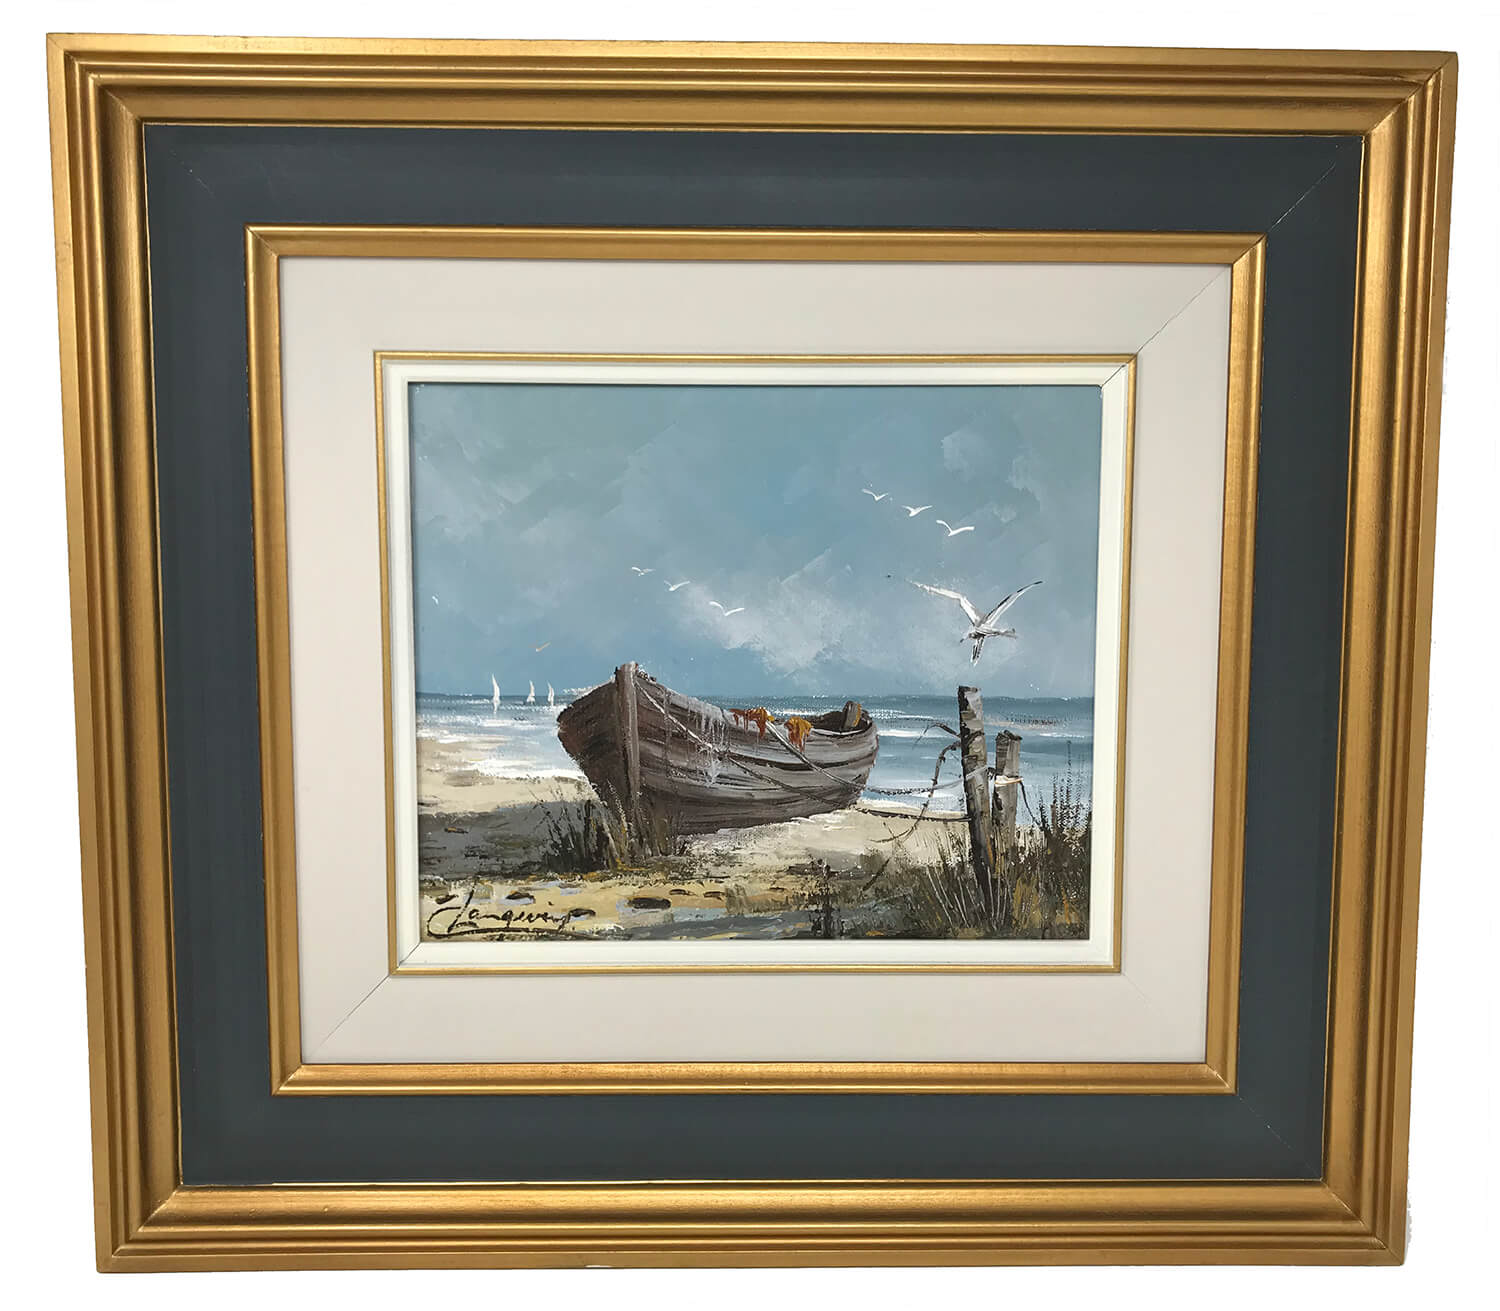 Canadian Claude Langevin Seashore Painting